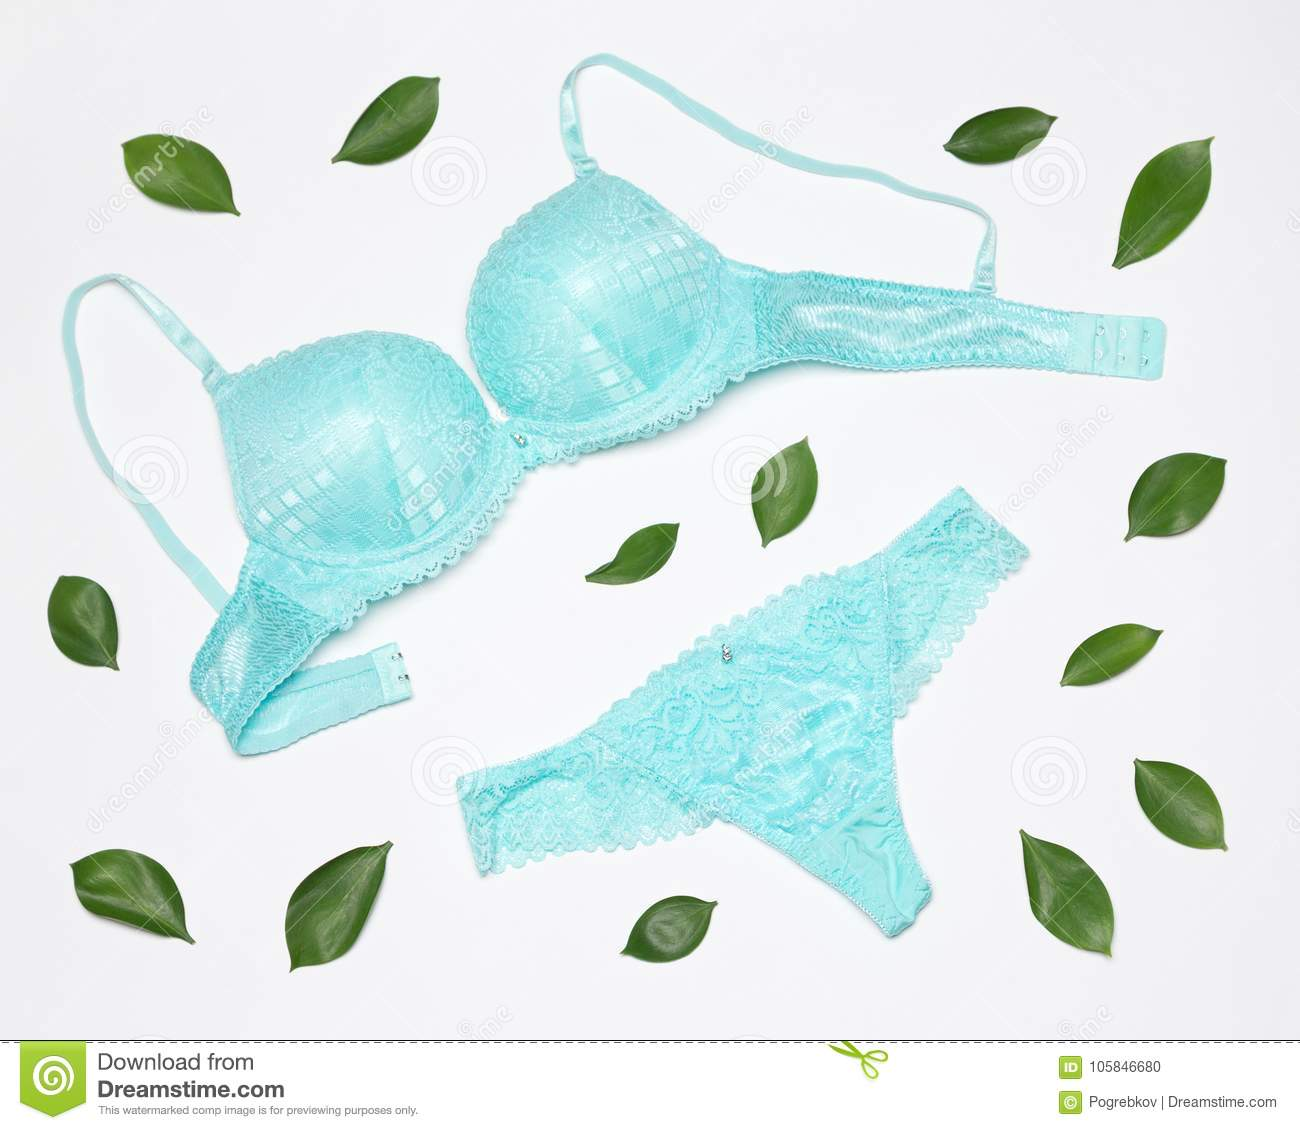 3f47baee51d2 Lingerie set of underwire bra and lace insert pantie surrounded by fresh  green leaves on white background